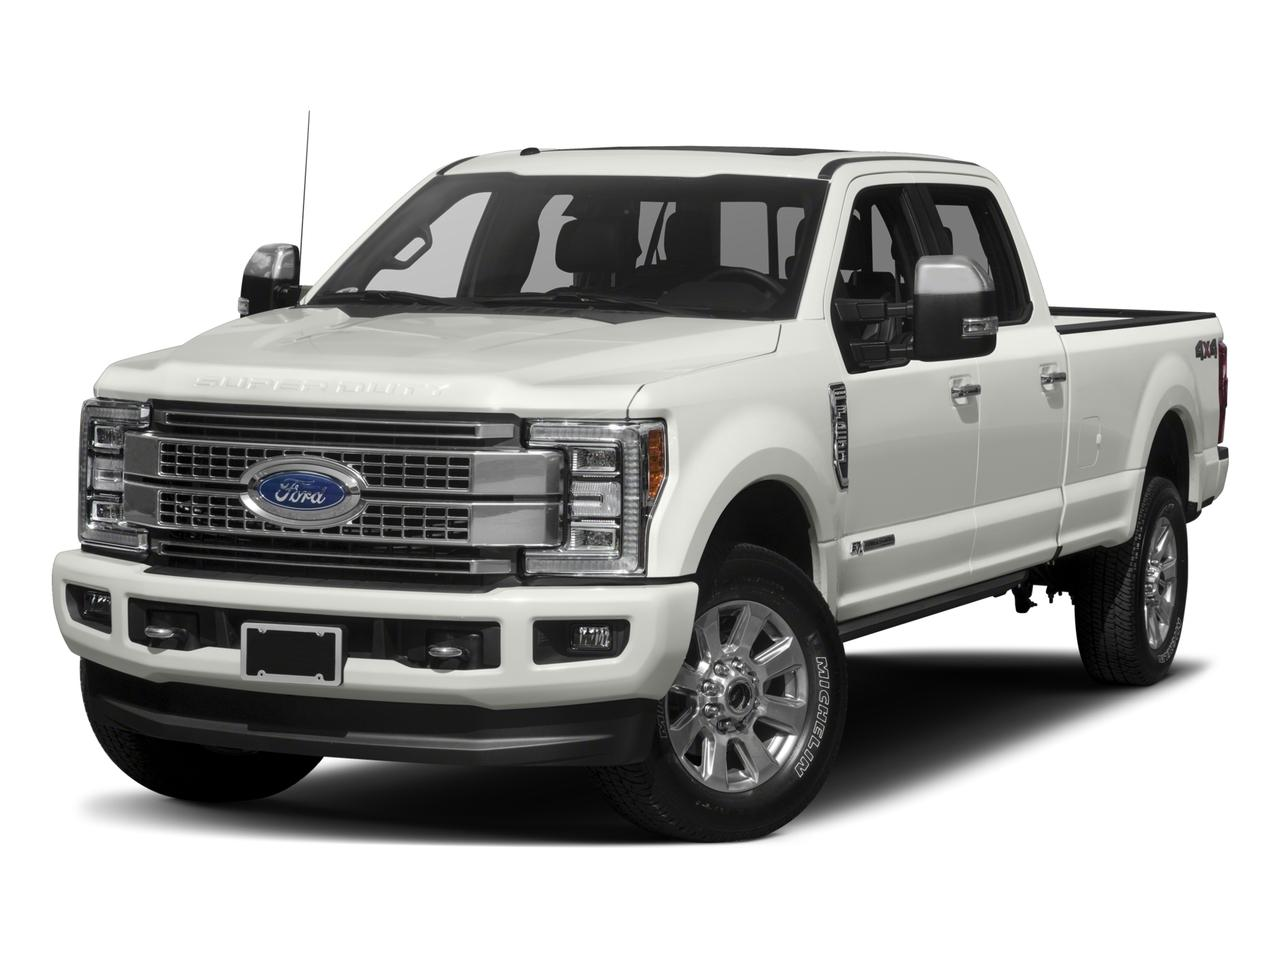 2017 Ford Super Duty F-250 SRW Vehicle Photo in Broussard, LA 70518